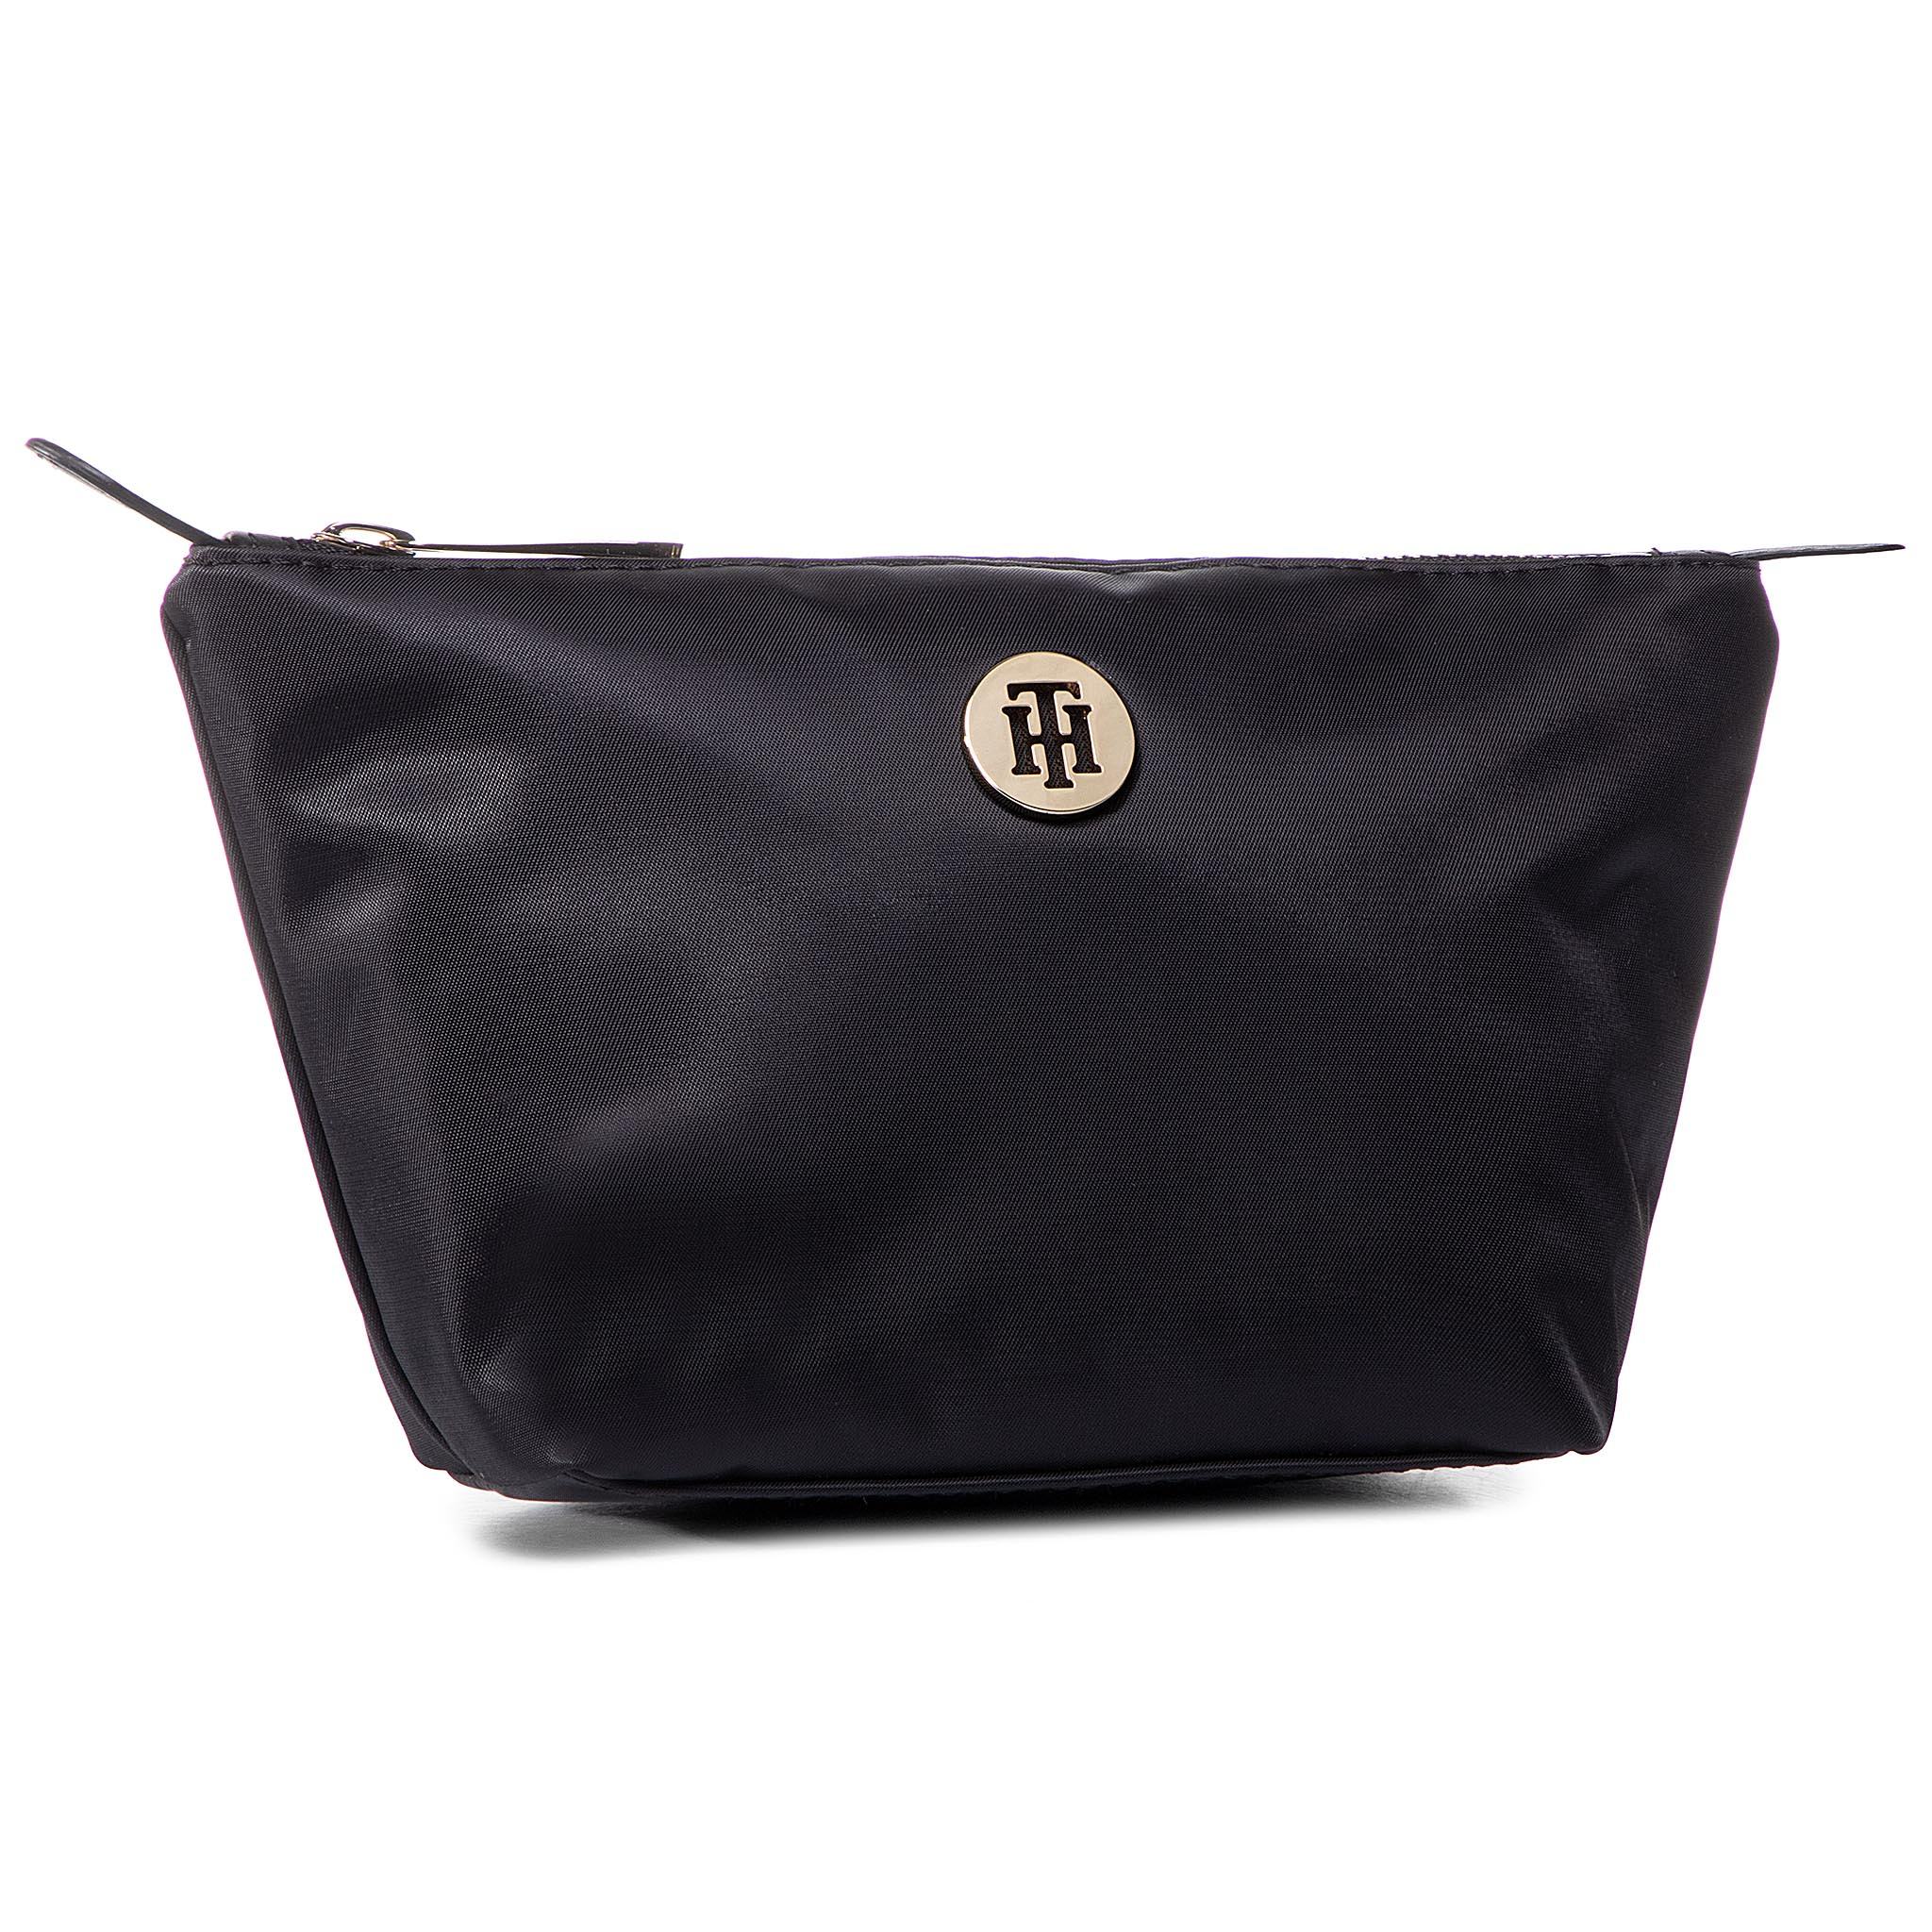 Geantă Pentru Cosmetice Tommy Hilfiger - Poppy Make Up Bag Aw0aw08010 Bds imagine epantofi.ro 2021